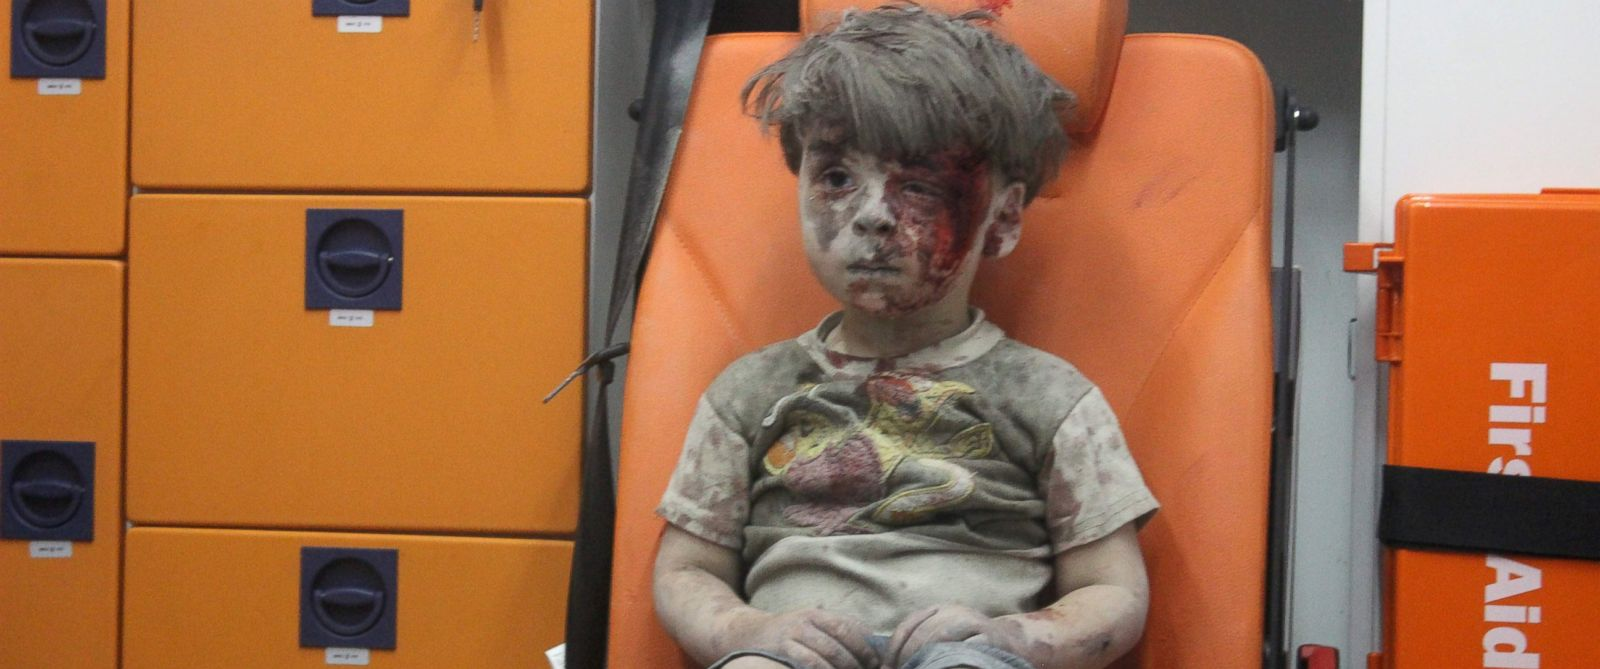 PHOTO: Omran Daqneesh, 4, sits in an ambulance after being rescued from the rubble of a building hit by an air strike in the rebel-held Qaterji neighborhood of the northern Syrian city of Aleppo late on Aug. 17, 2016.